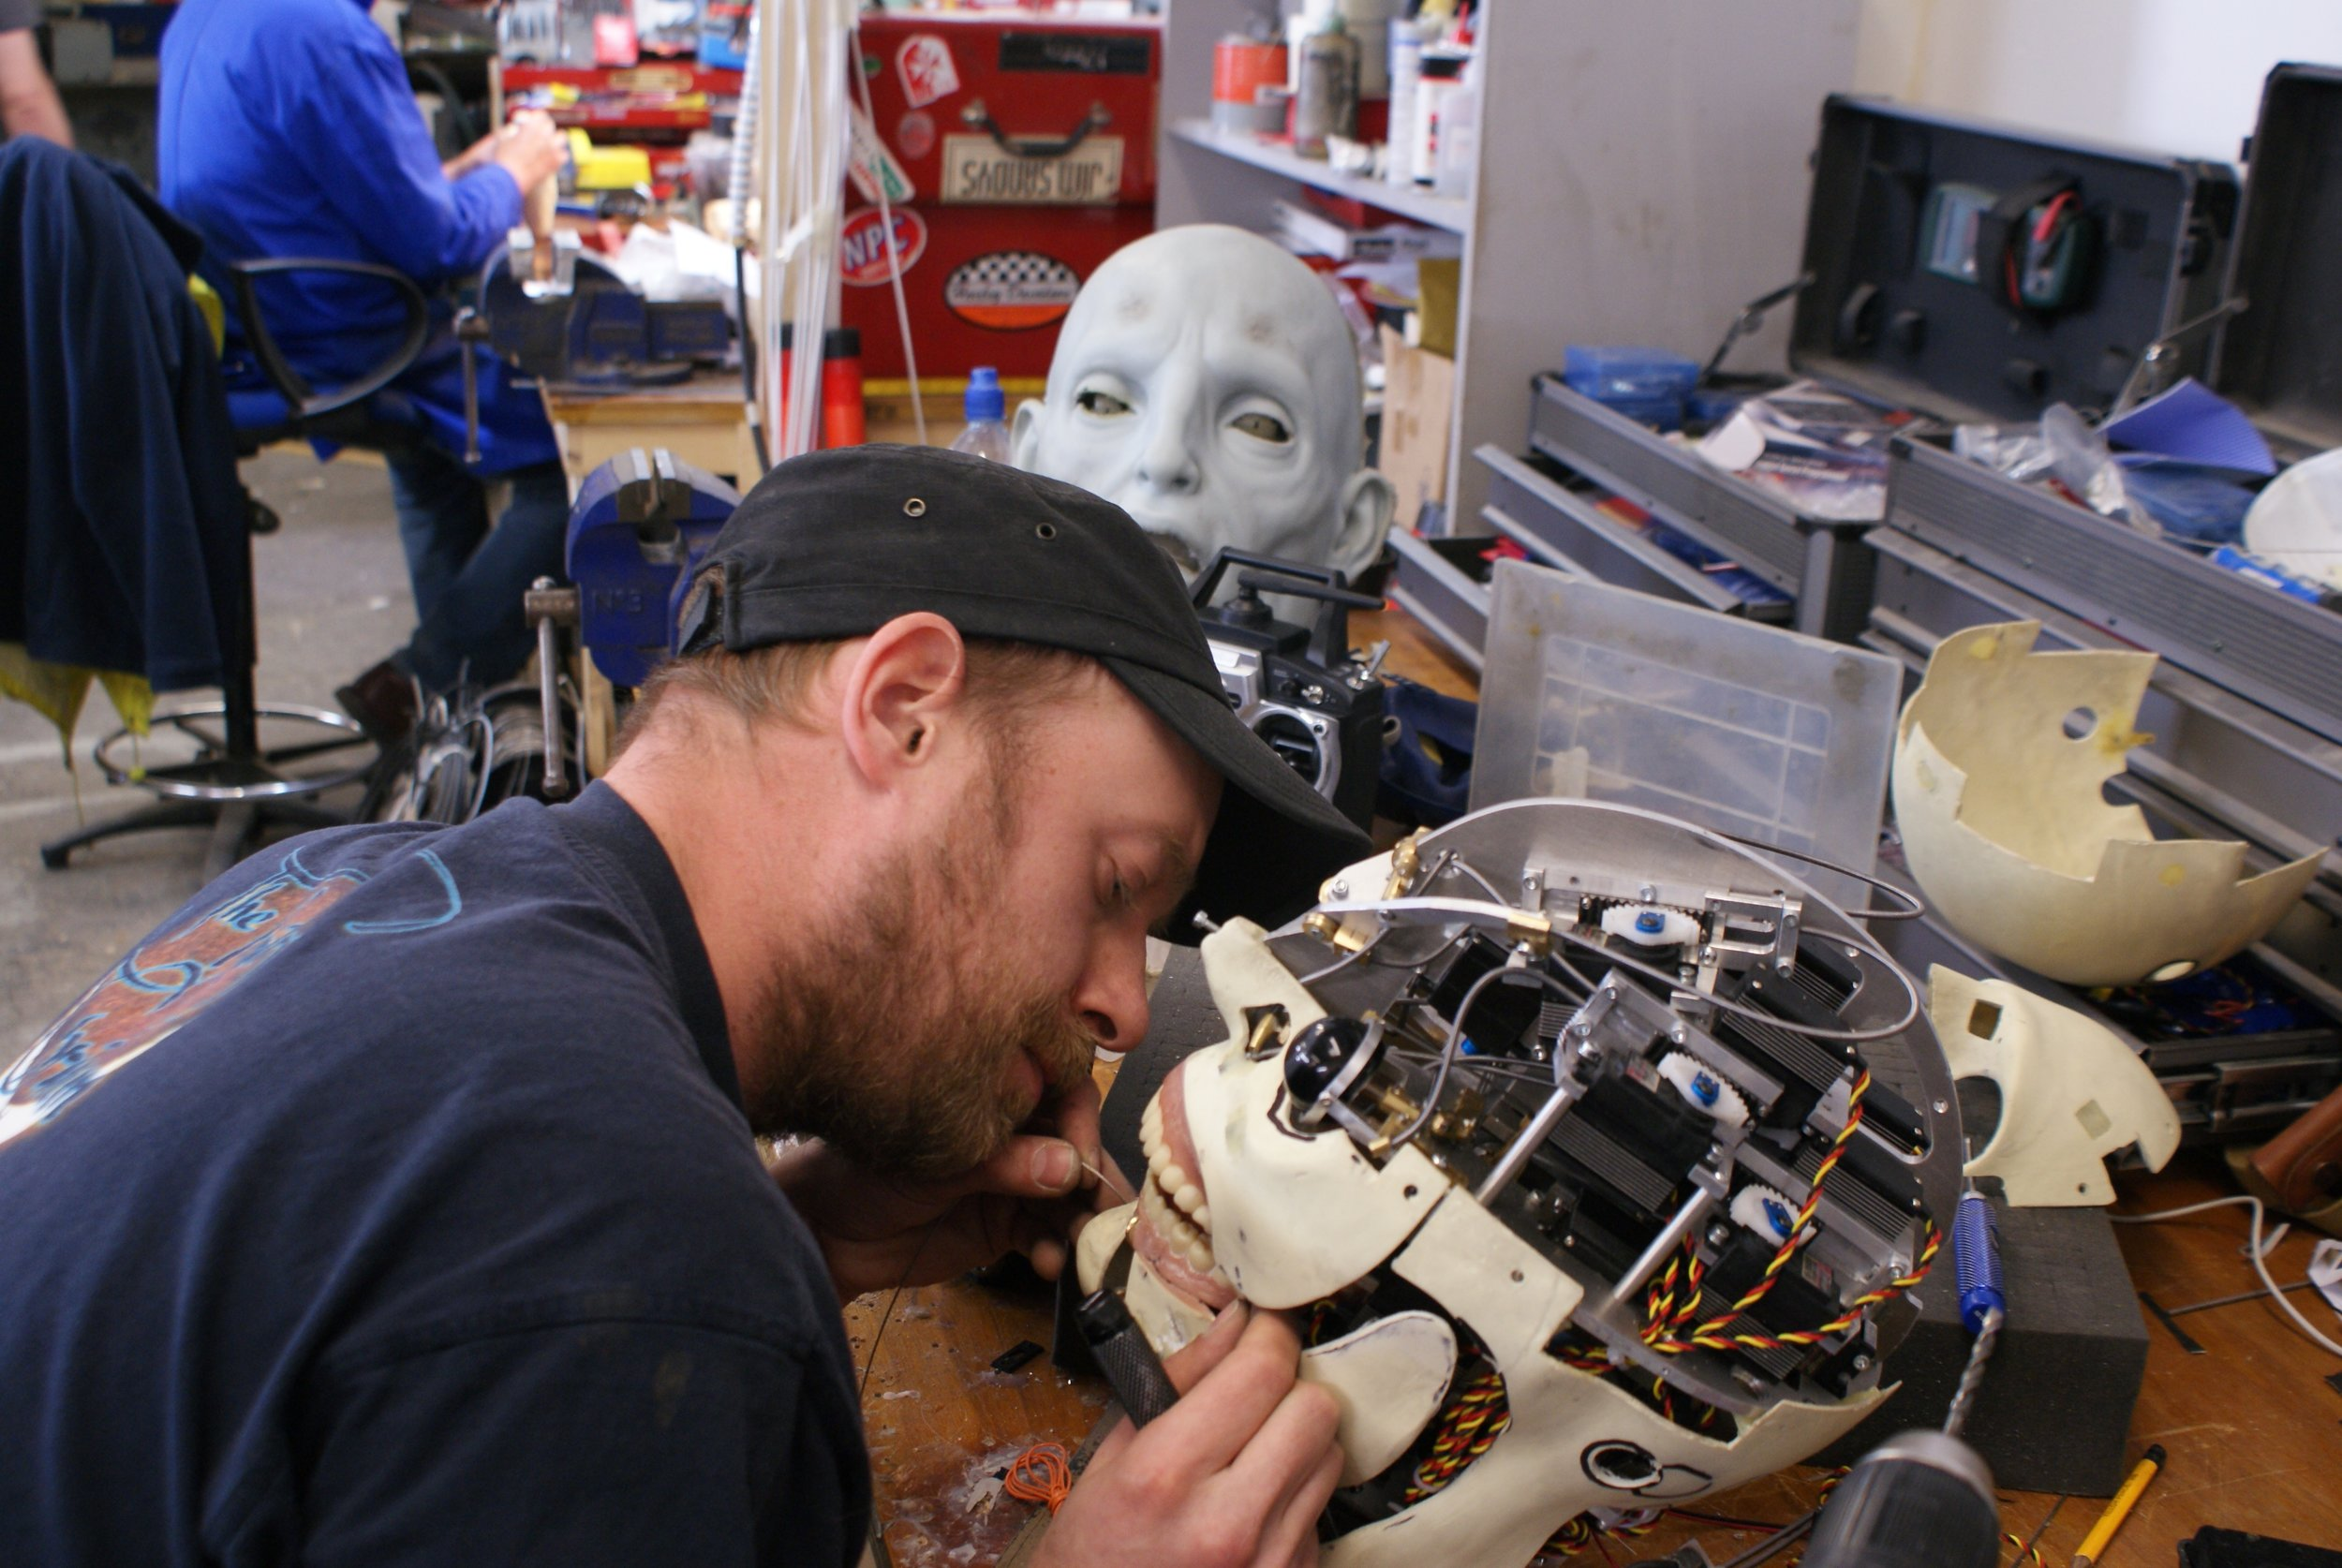 Gustav Hoegen building the animatronic engineer head.